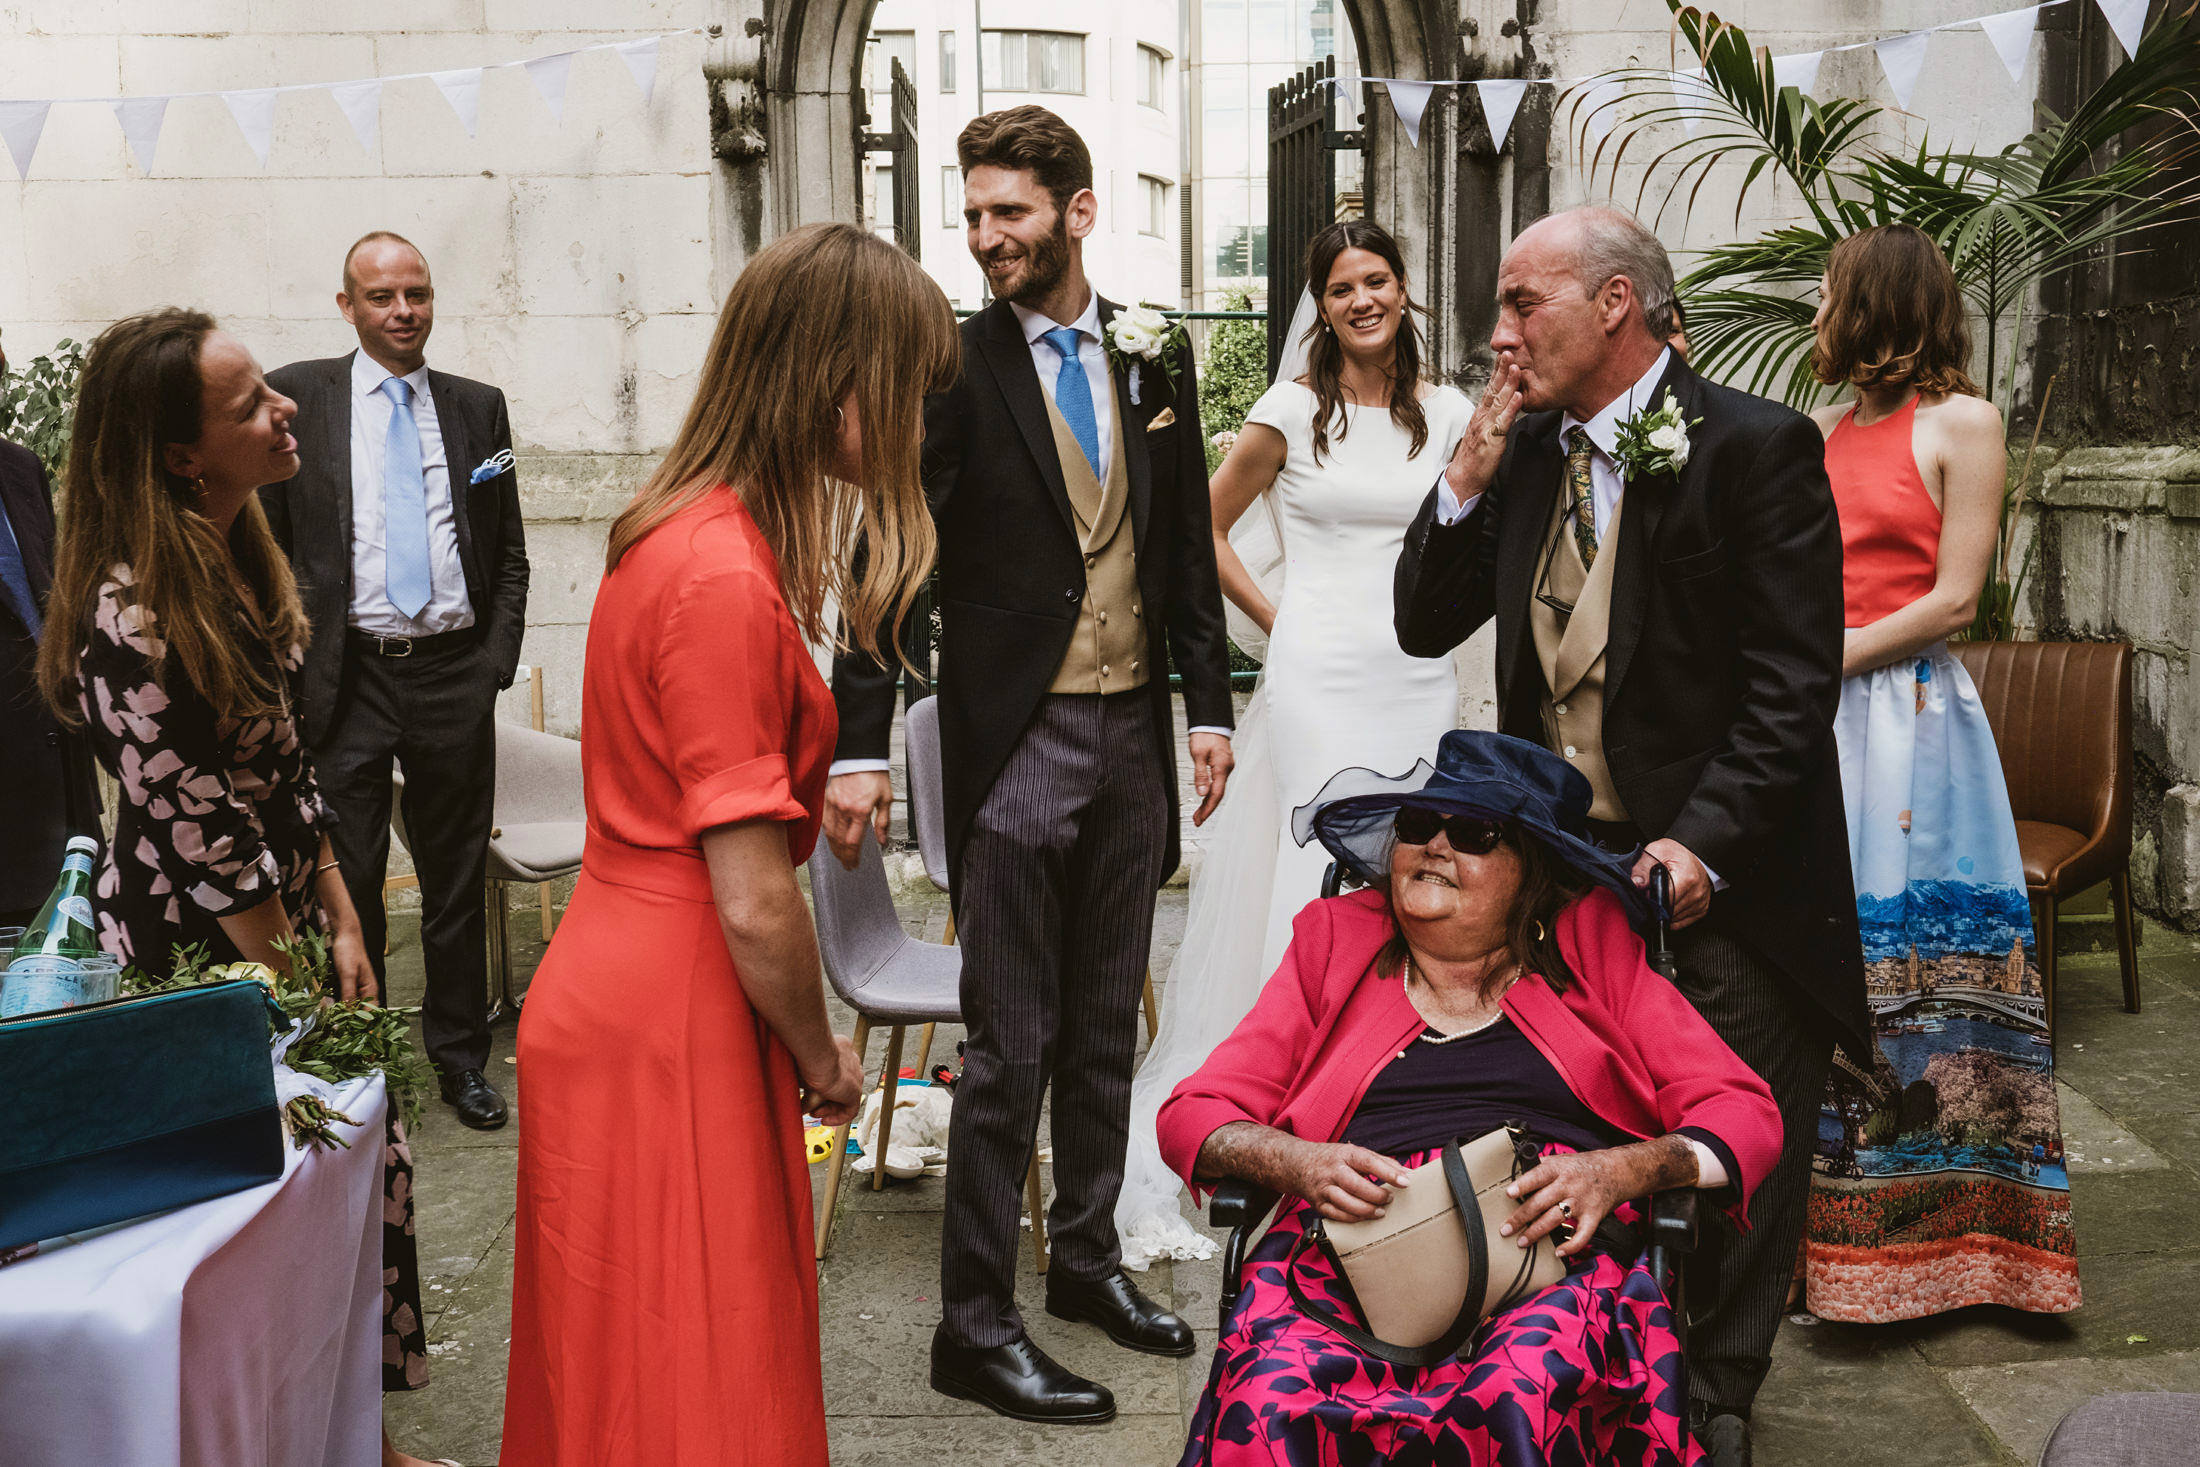 Multi-layered street documentary wedding photograph at an intimate London wedding reception. Bride and groom stand centre, to their right is a woman in a wheelchair, being pushed by the father of the bride who blows a kiss to one of the guests. Several other guests watch on.